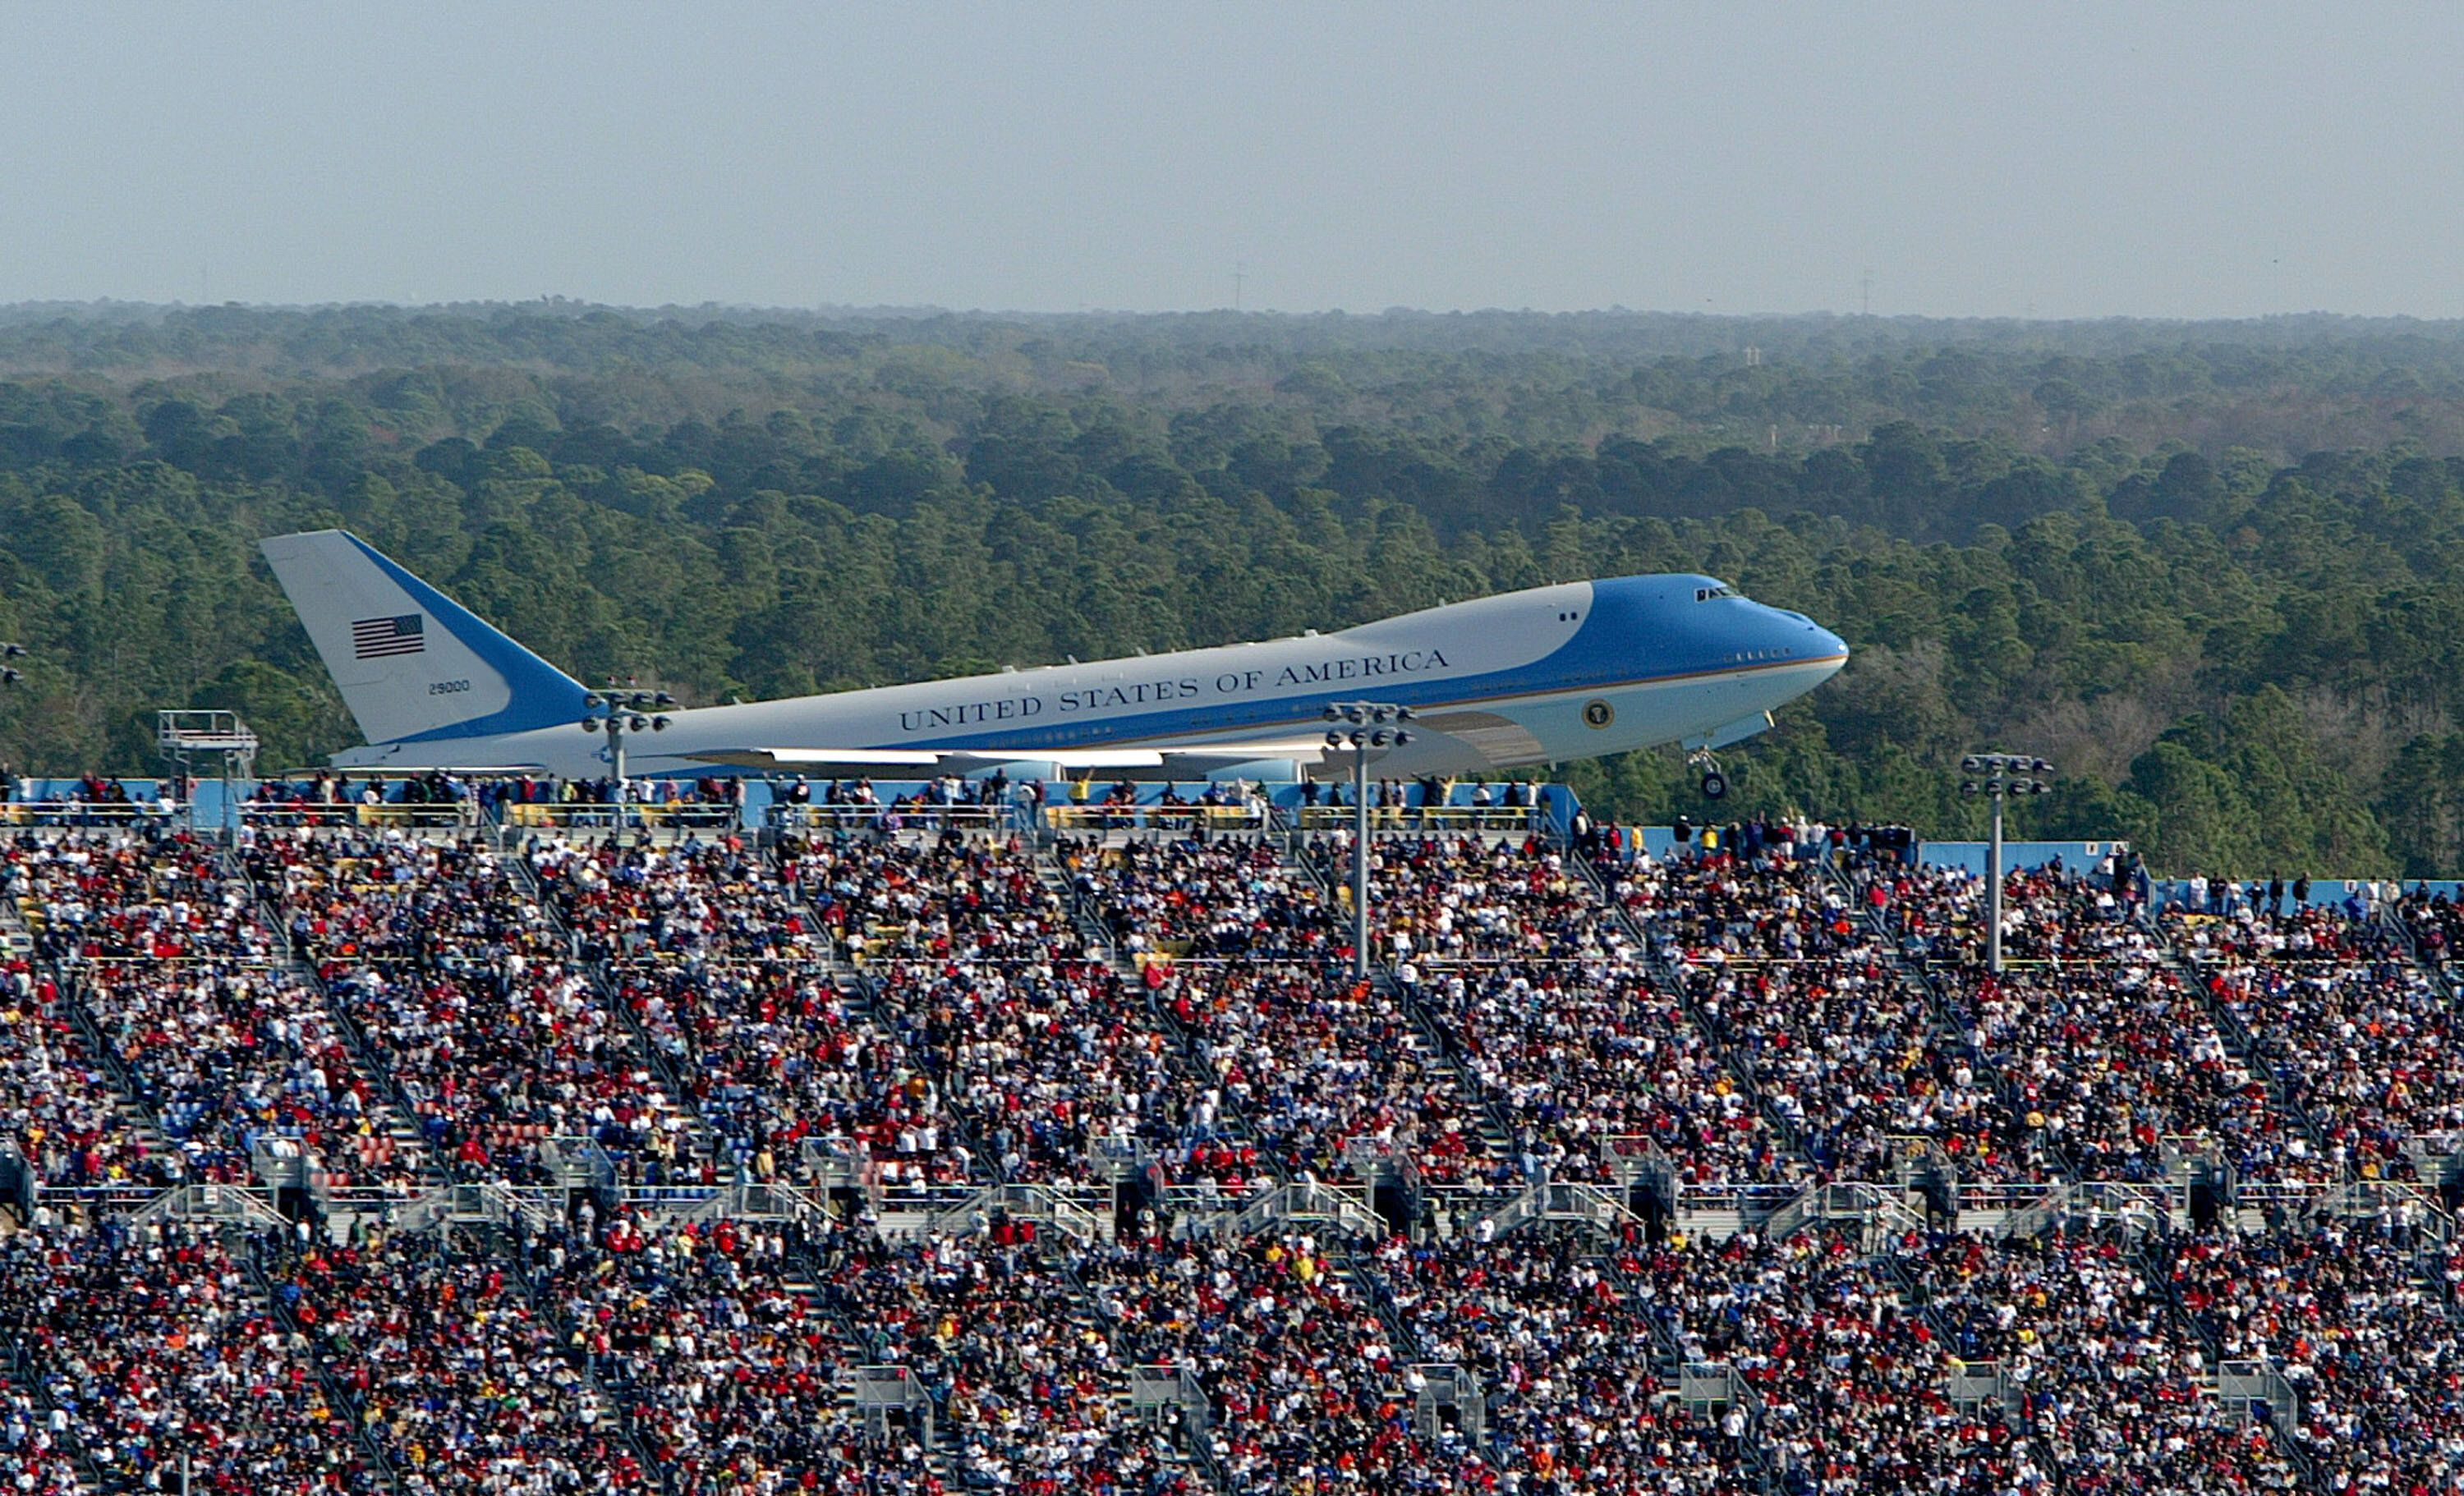 In this 2004 file photo, Air Force One takes off with former President George W. Bush aboard after attending the NASCAR Nextel Cup Daytona 500.